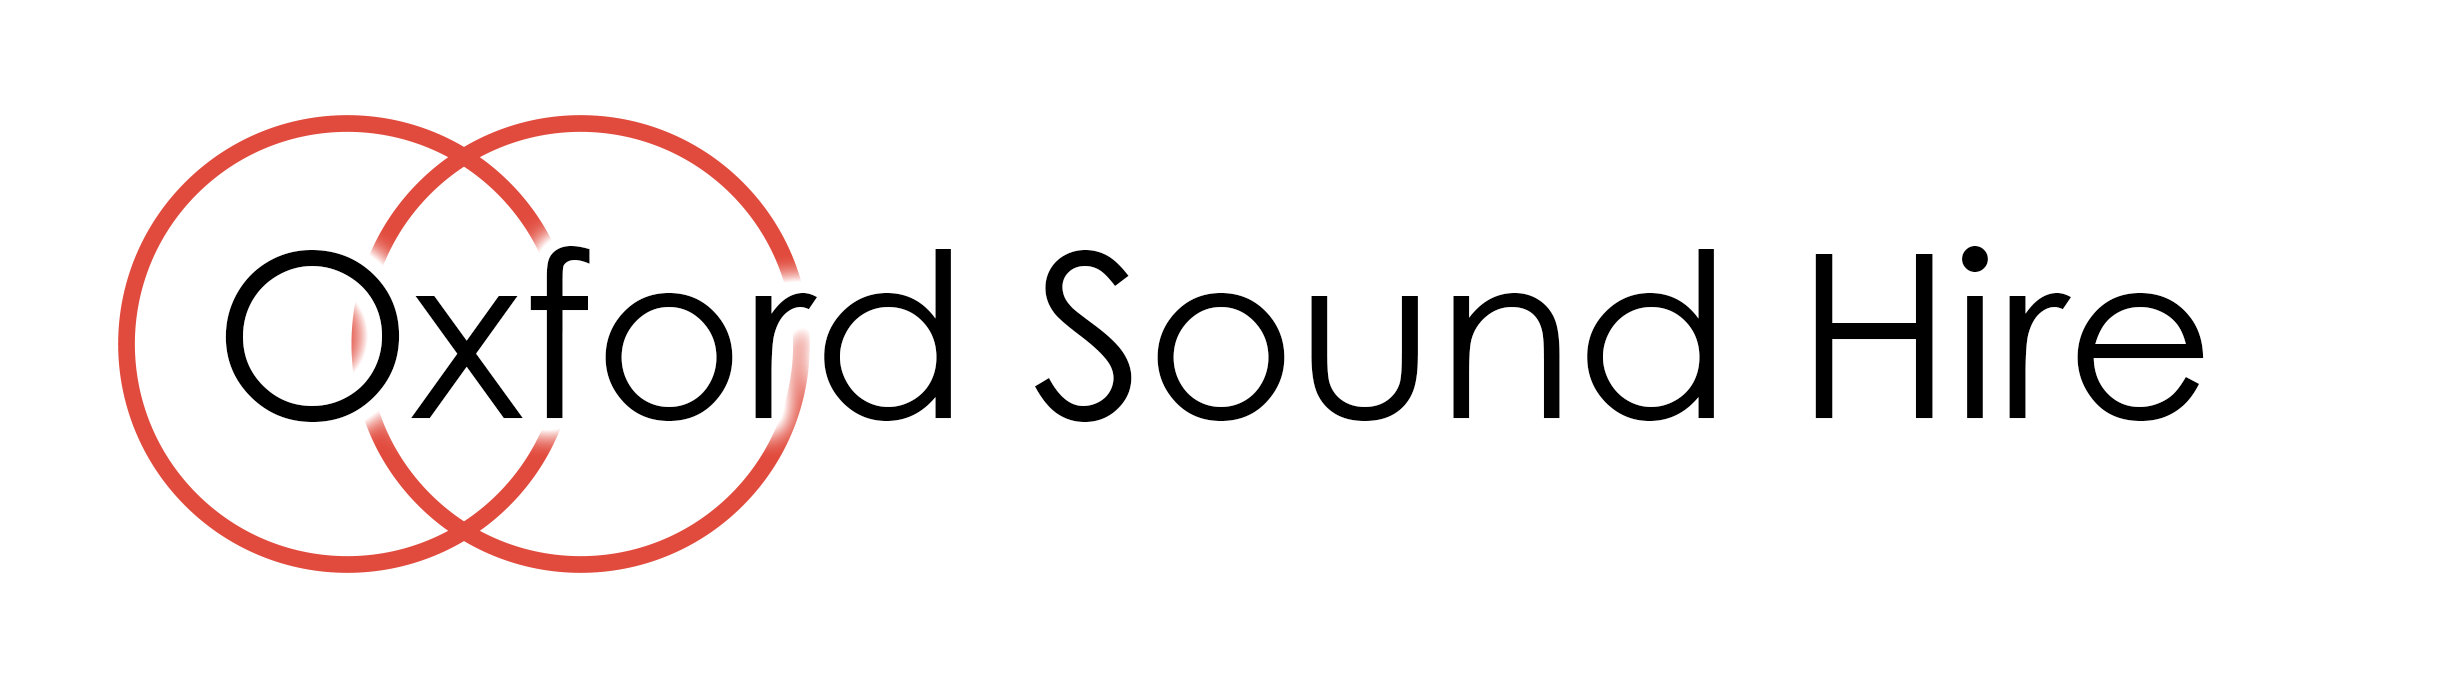 Oxford Sound Hire